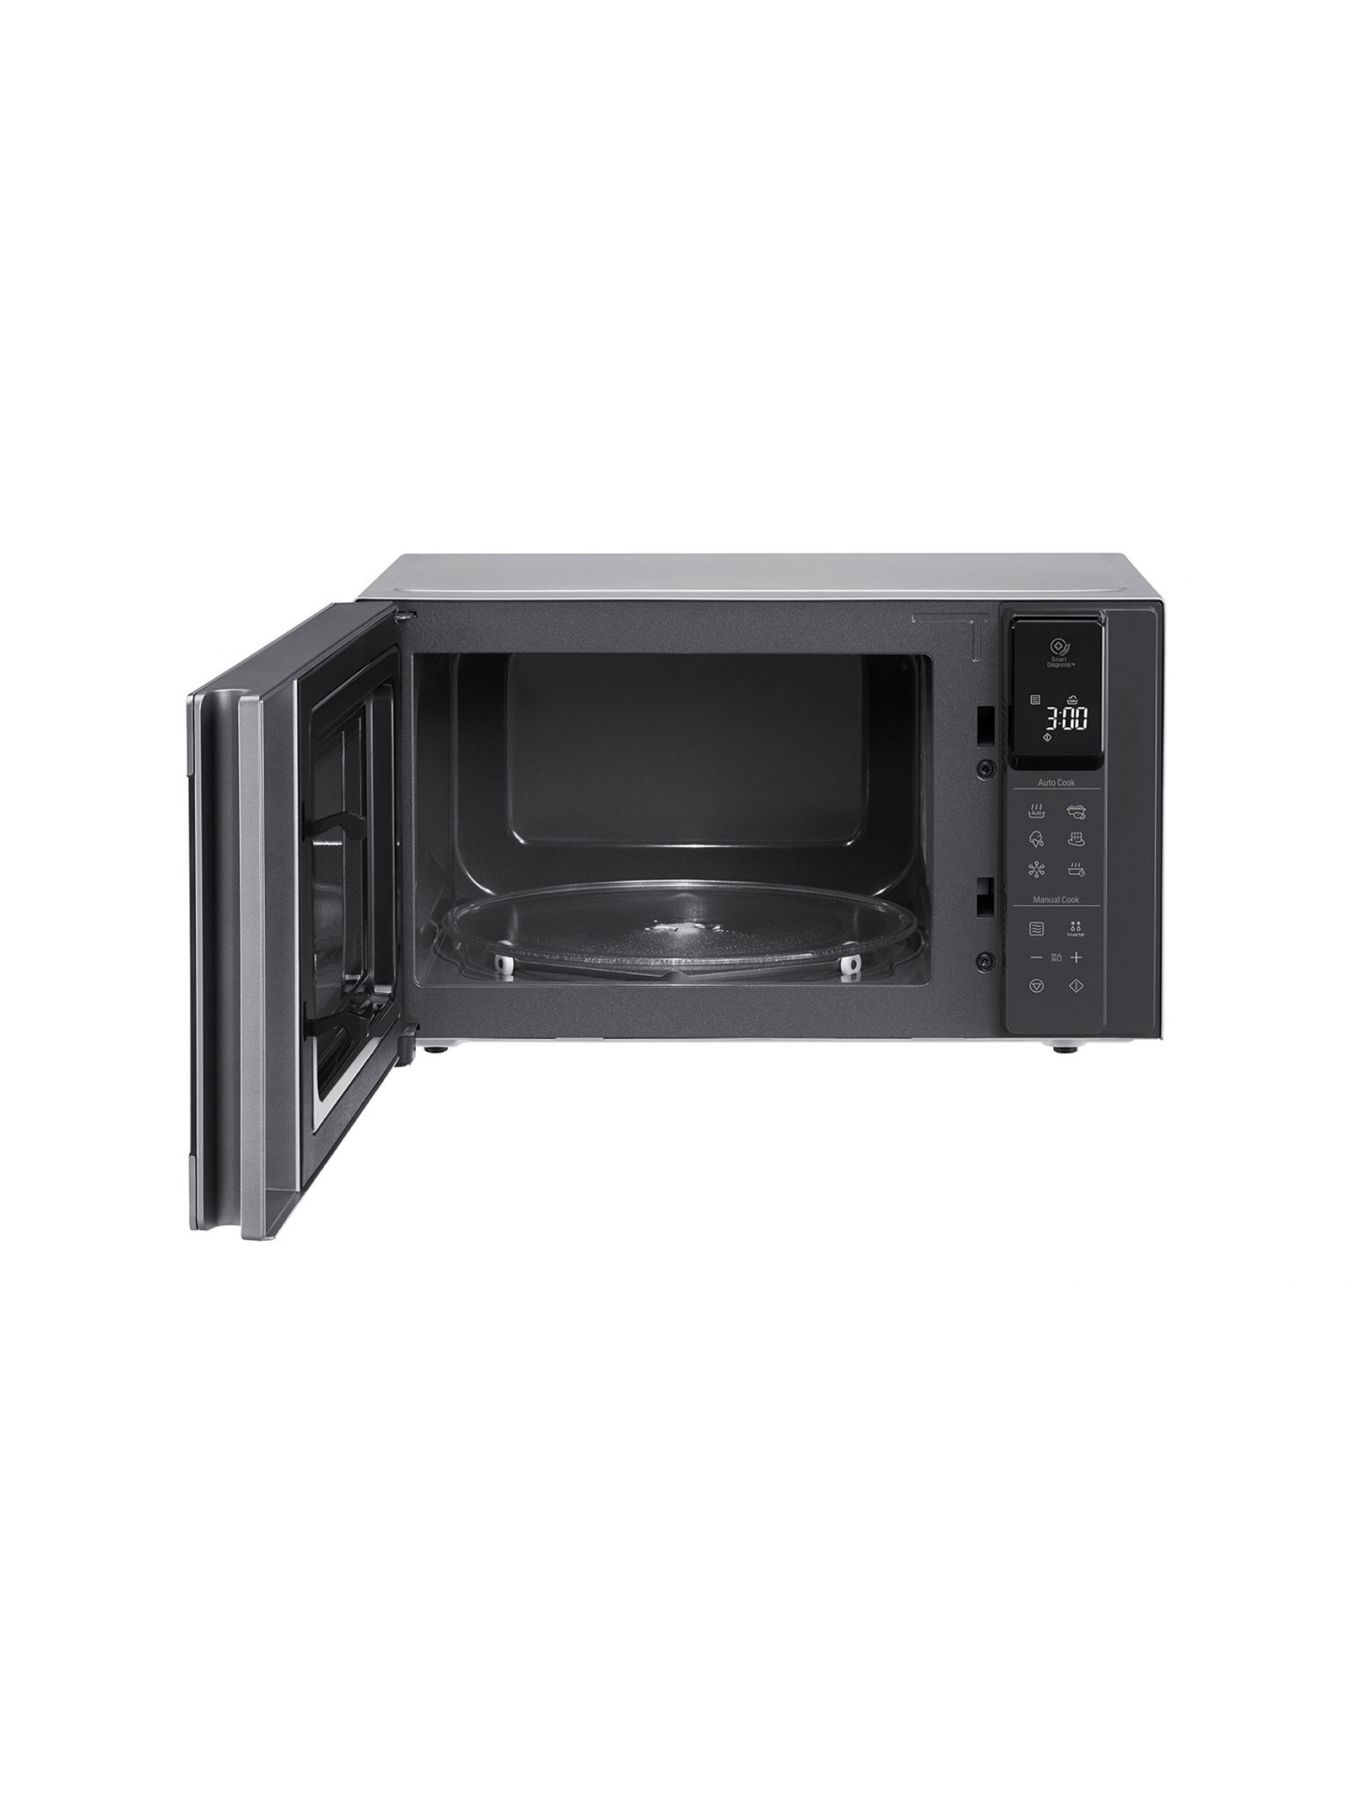 microwave oven 25l smart inverter even heating and easy clean stainless color